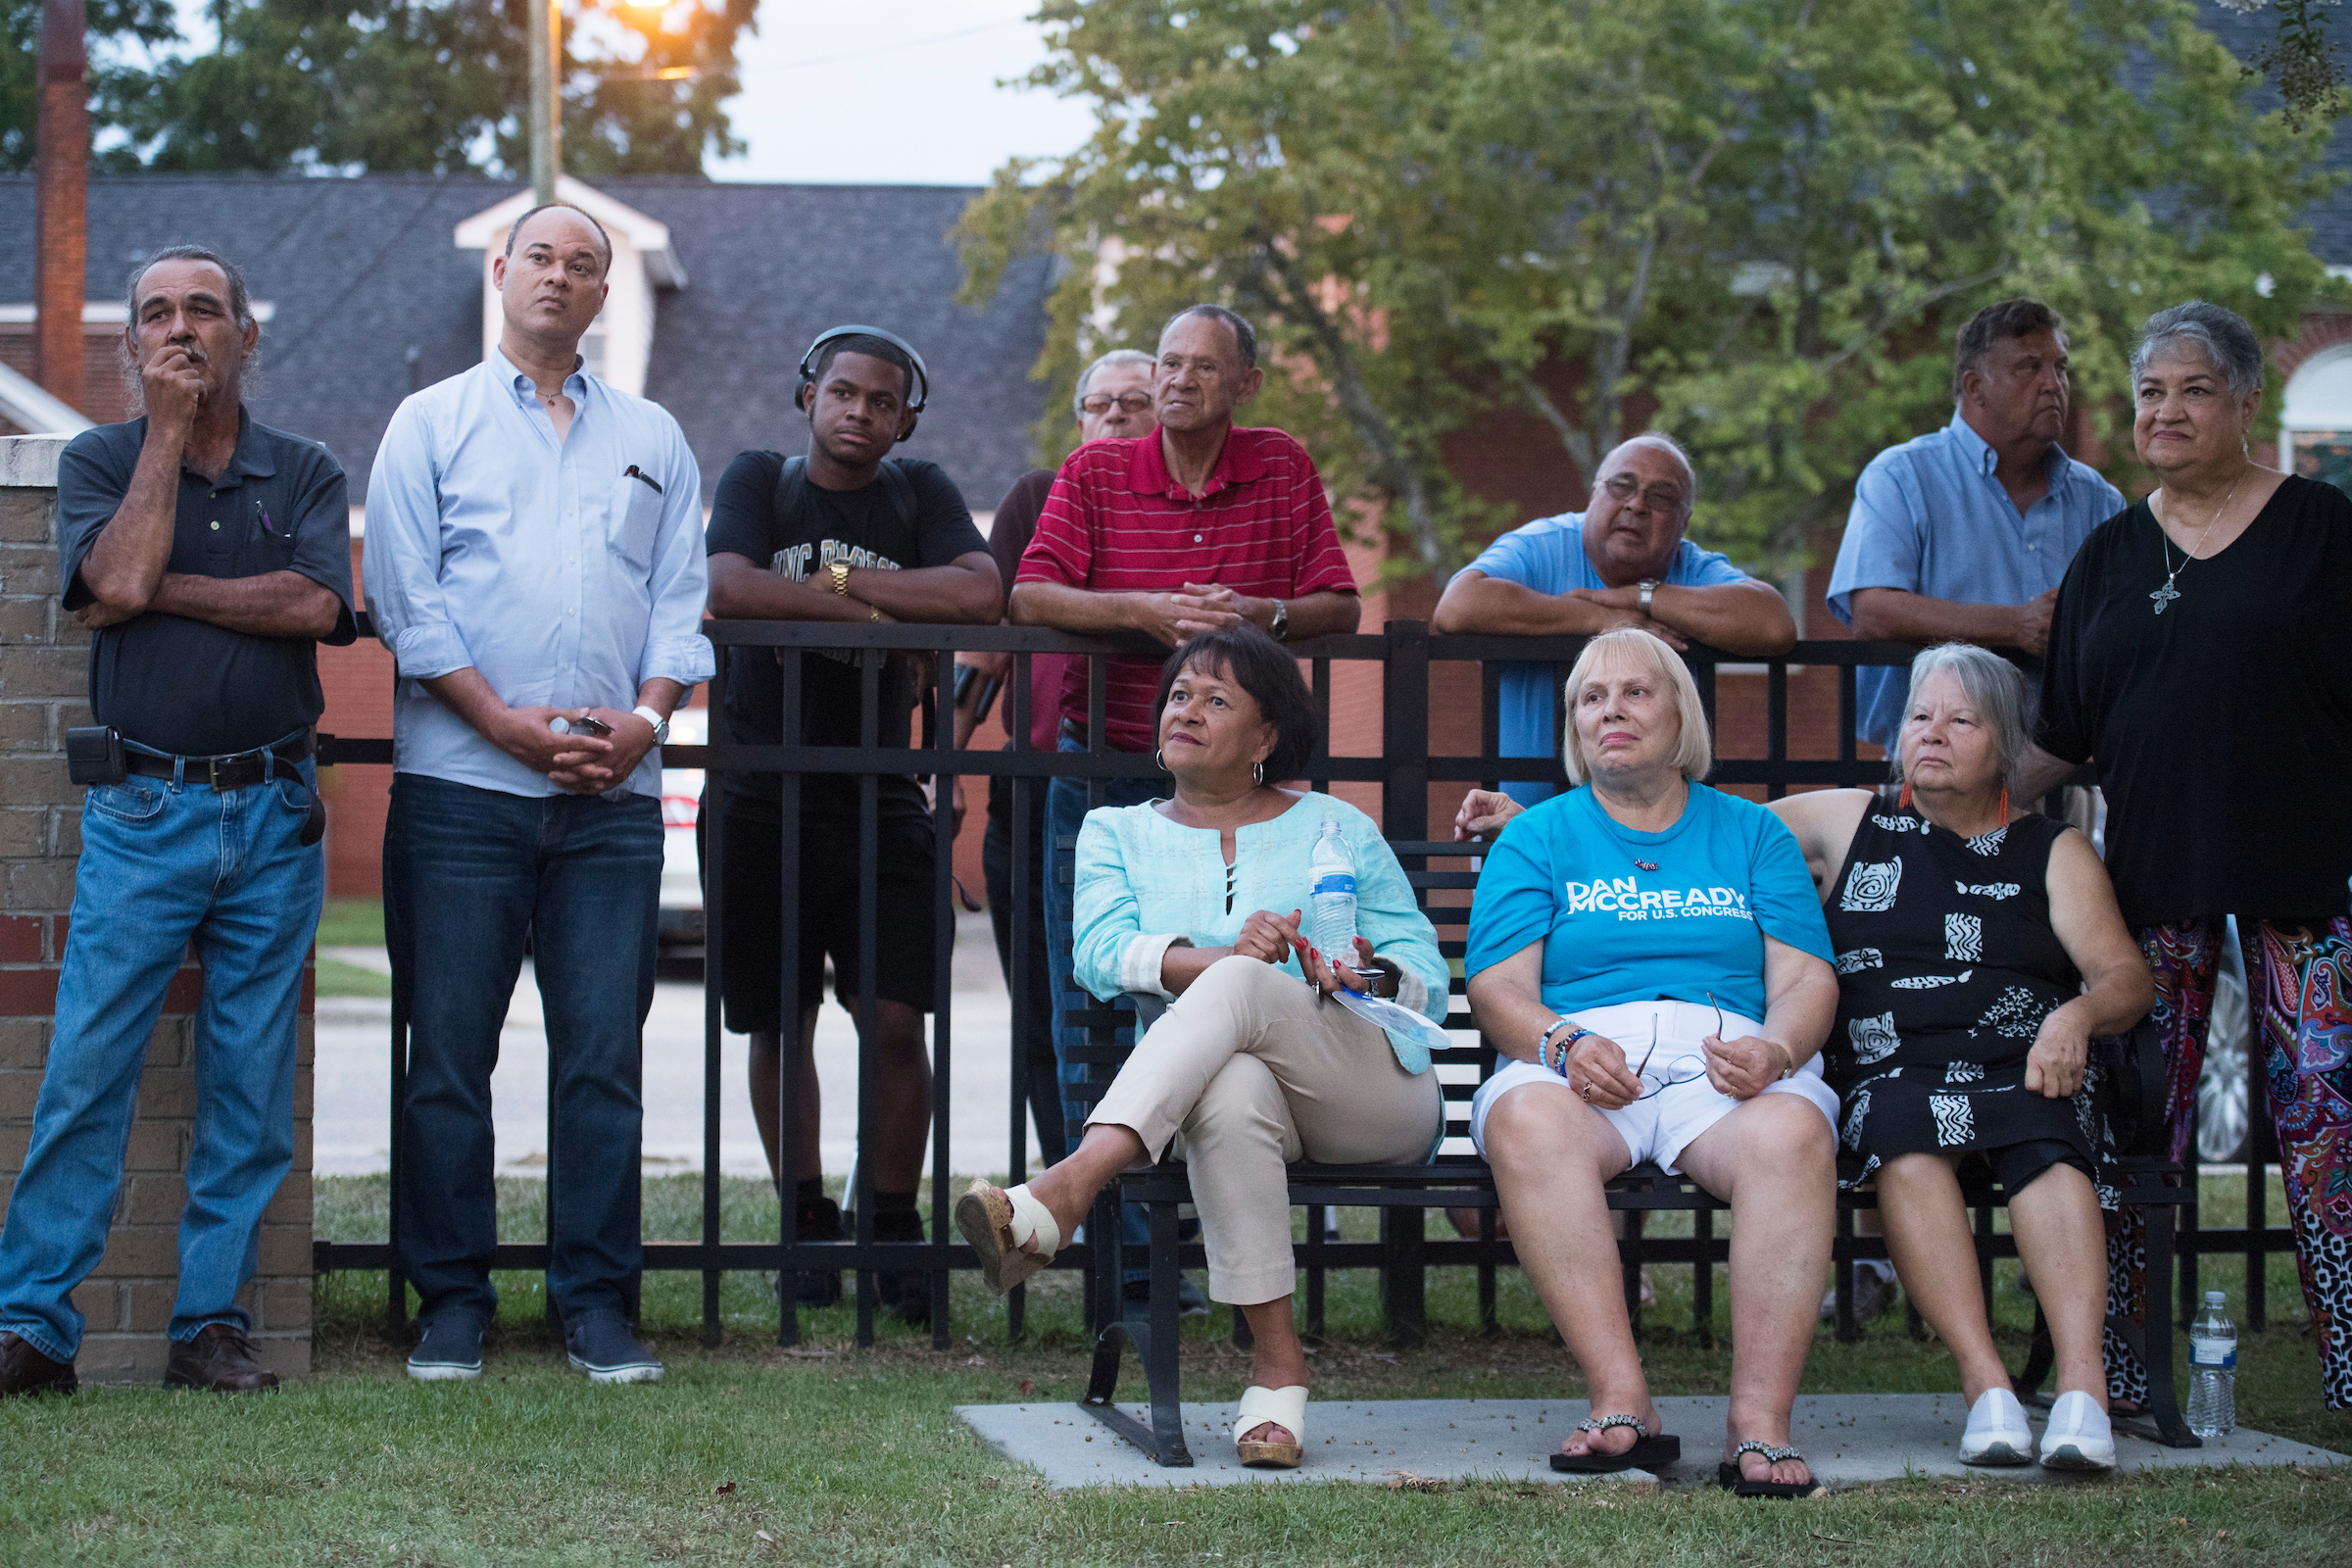 UNITED STATES - AUGUST 10: Voters listen to Dan McCready, Democratic candidate for North Carolina's 9th District, speak outside of the First United Methodist Church during his education tour in Pembroke, N.C., on Saturday, August 10, 2019. (Photo By Tom Williams/CQ Roll Call)